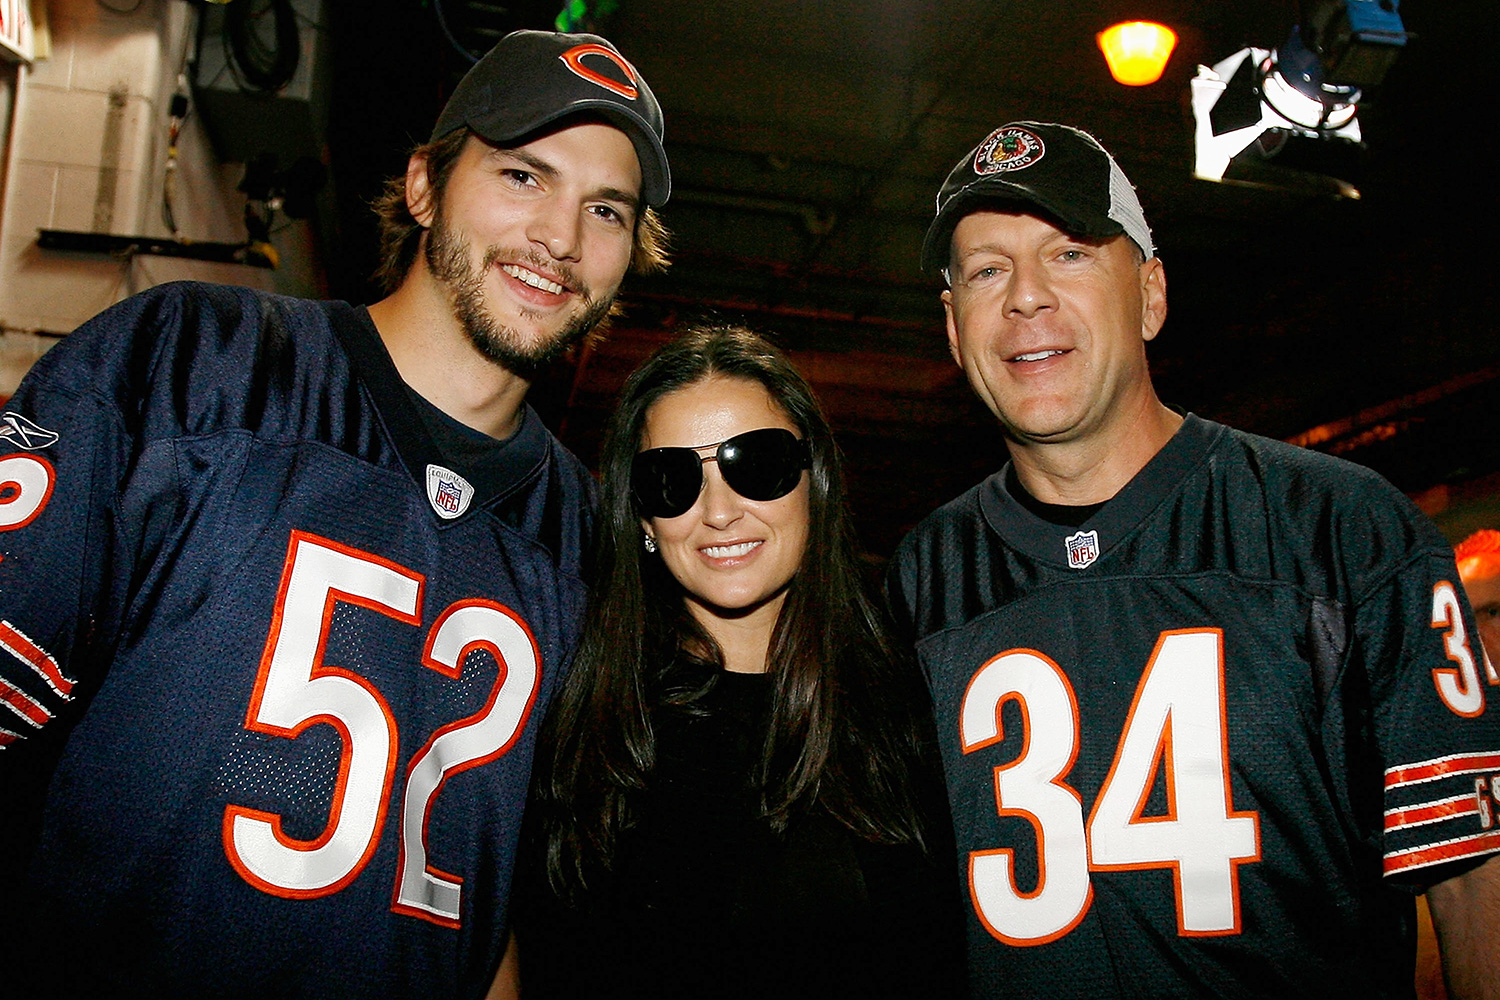 Ashton Kutcher, actress Demi Moore and actor Bruce Willis